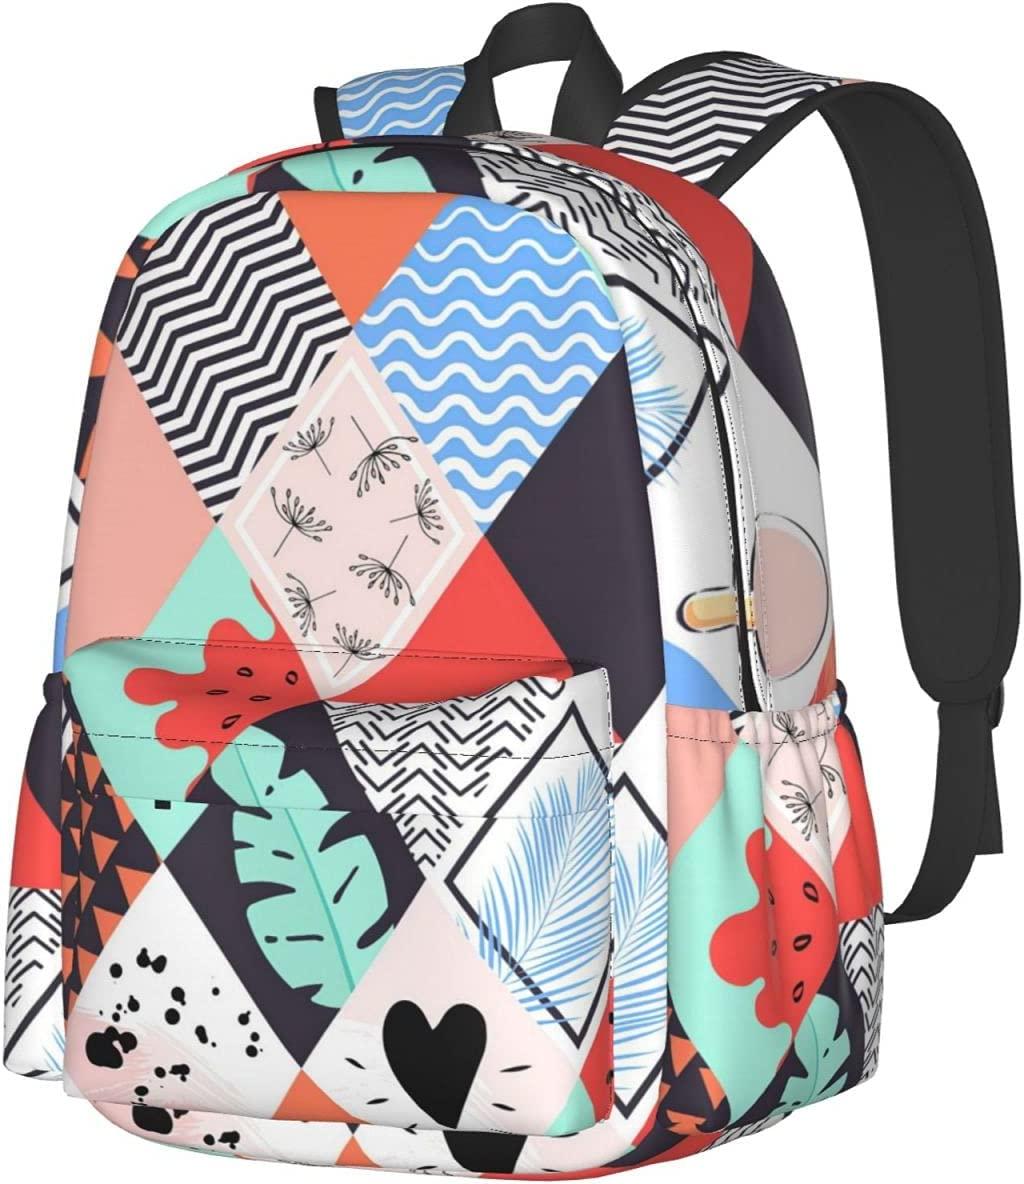 Diamond Super intense SALE Tropical Leaves Ice Cream Fashion Backpack Ranking TOP14 Casual Multip